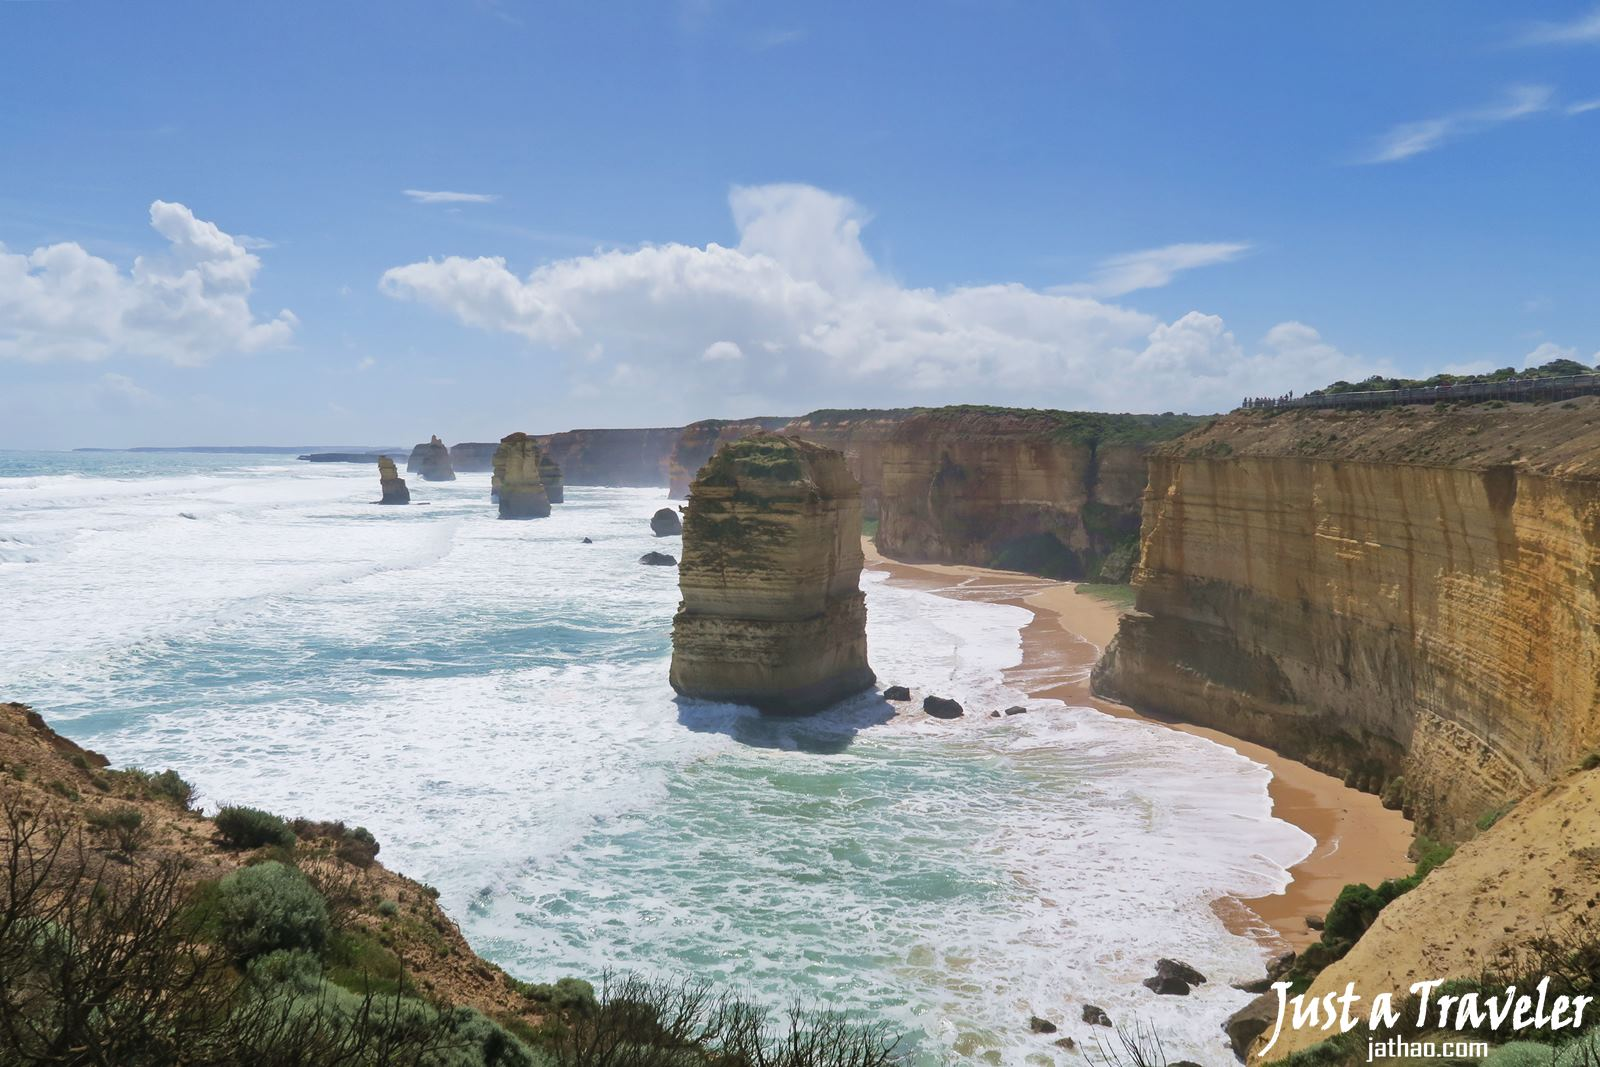 Melbourne-iVenture-Card-Attractions-Pass-Great Ocean Road-Day Tour-Discount-Offers-Cheap-Saving-Travel Guide-Independent Tour